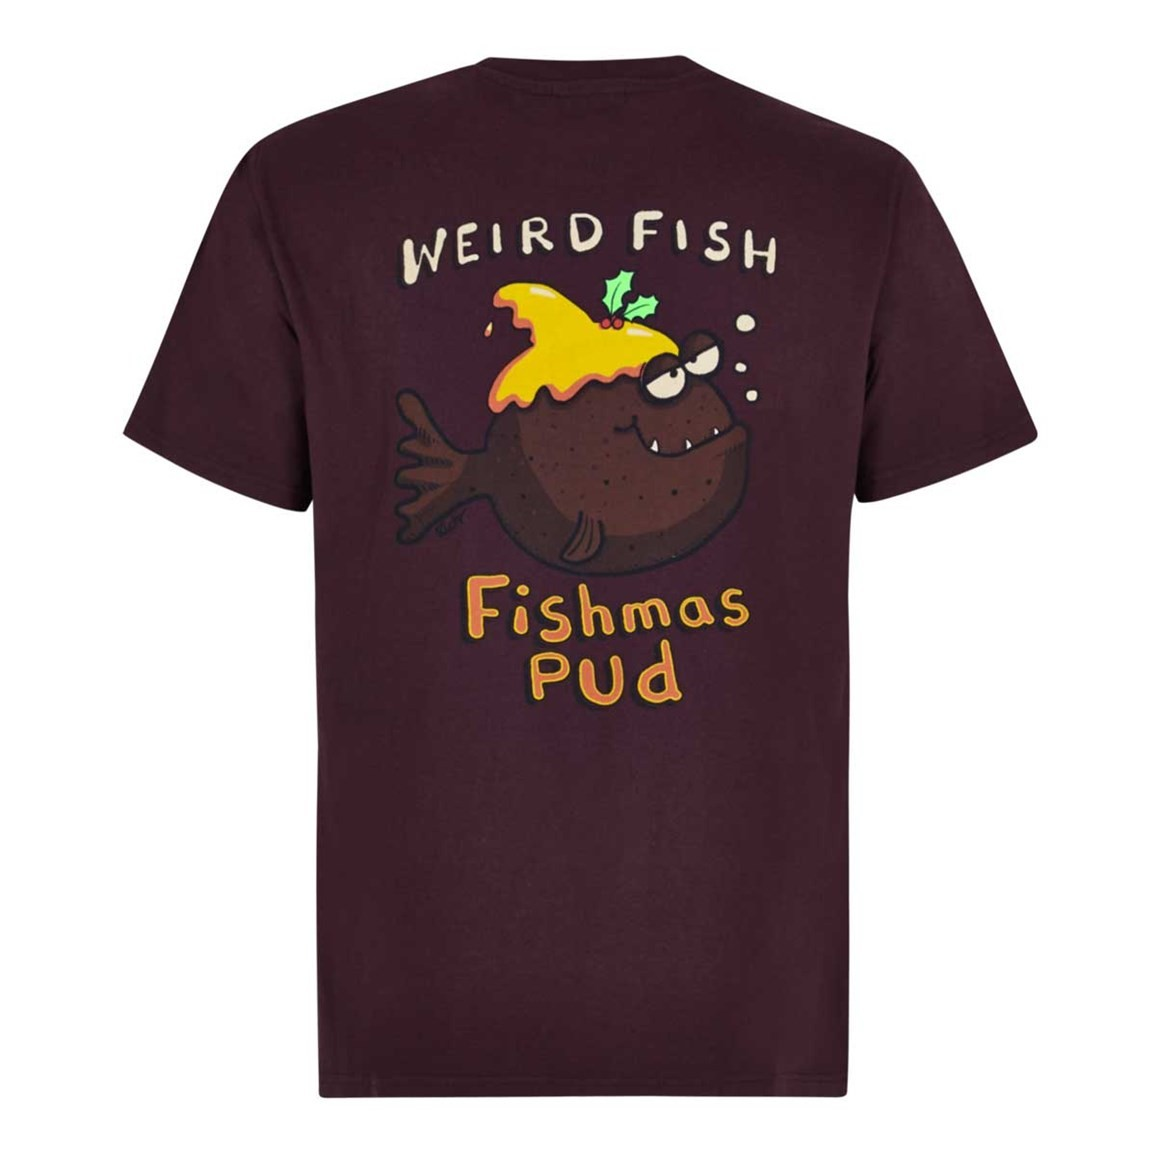 Weird Fish Fishmas Pud Artist T-Shirt Mulled Wine